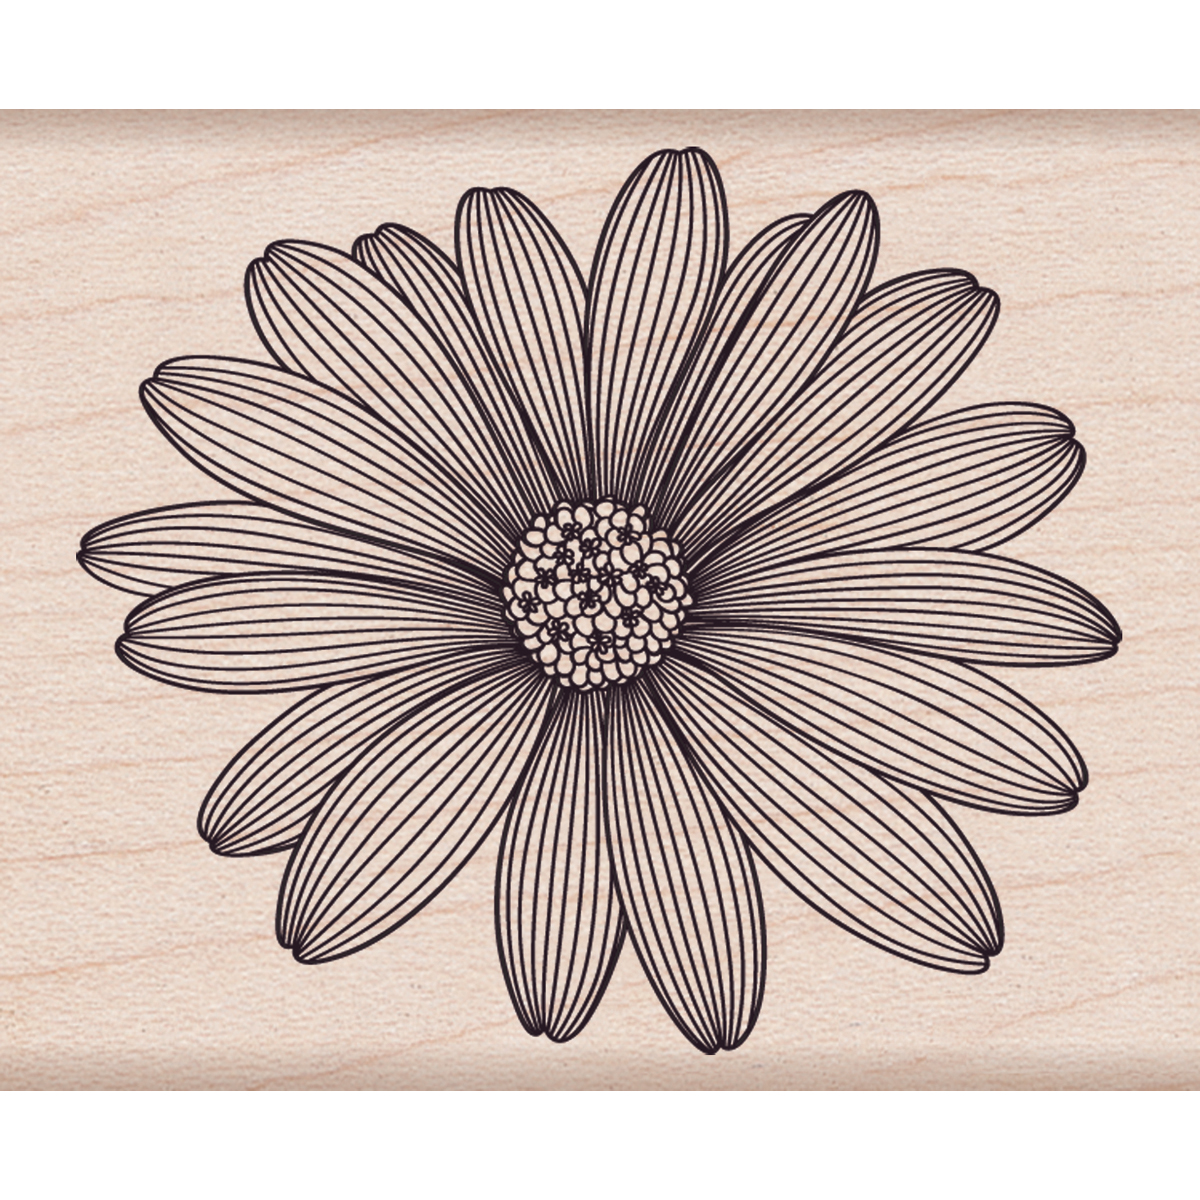 Hero Arts Mounted Rubber Stamps Etched Daisy